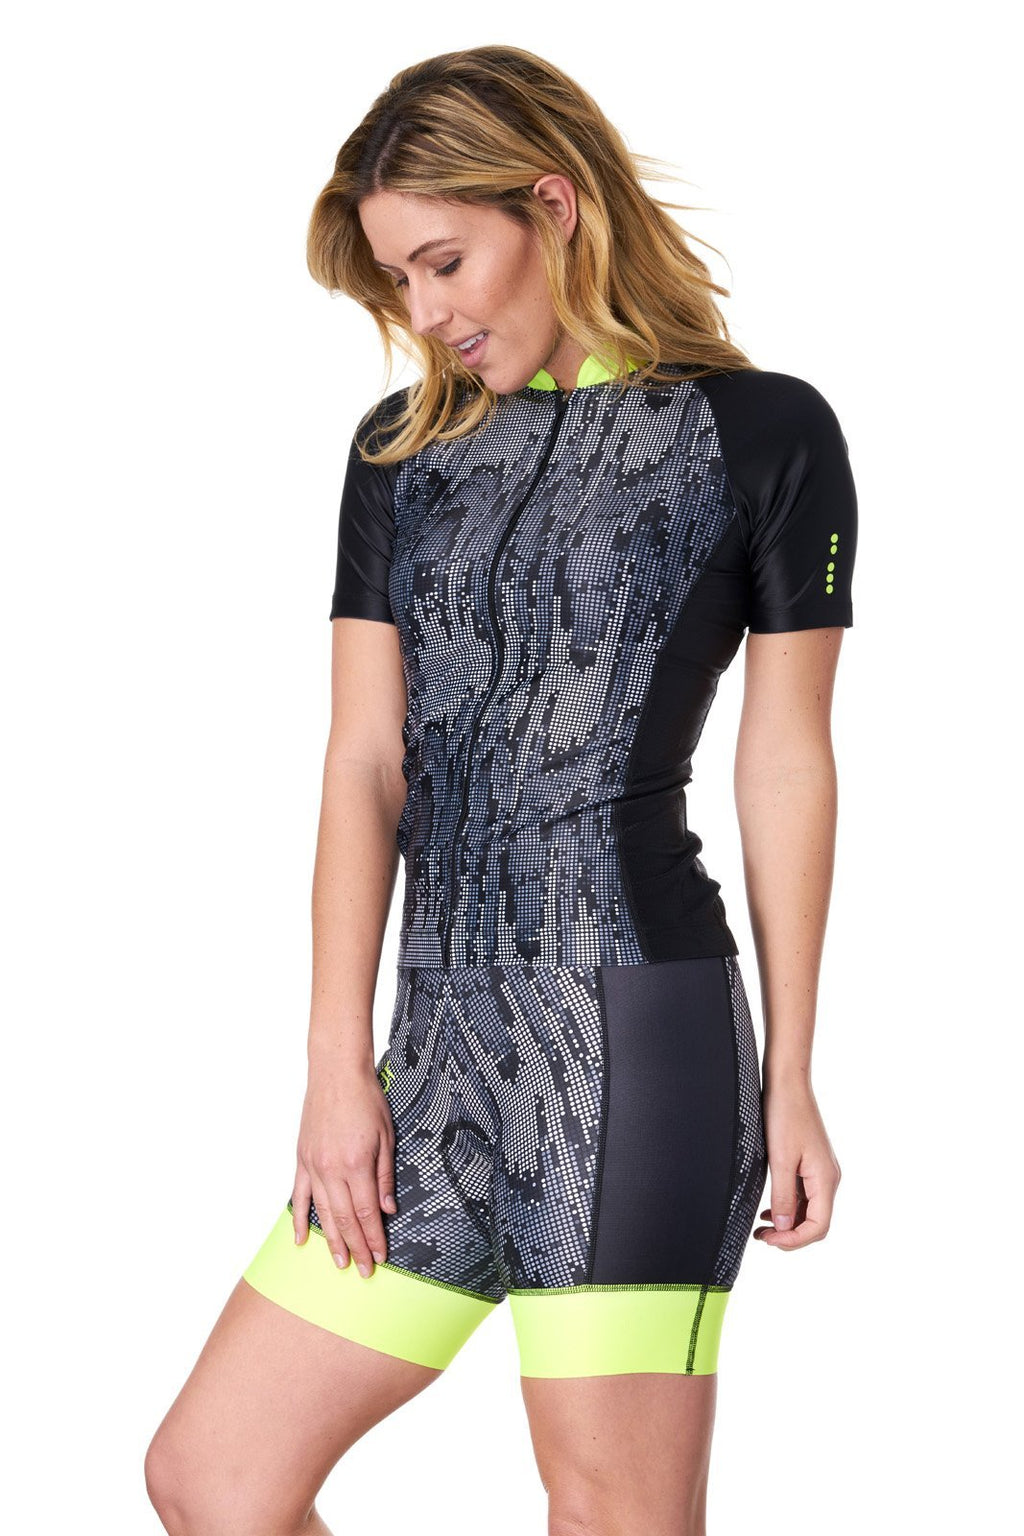 Coeur Cycling Jersey Women's Cycling Jersey in Matrix